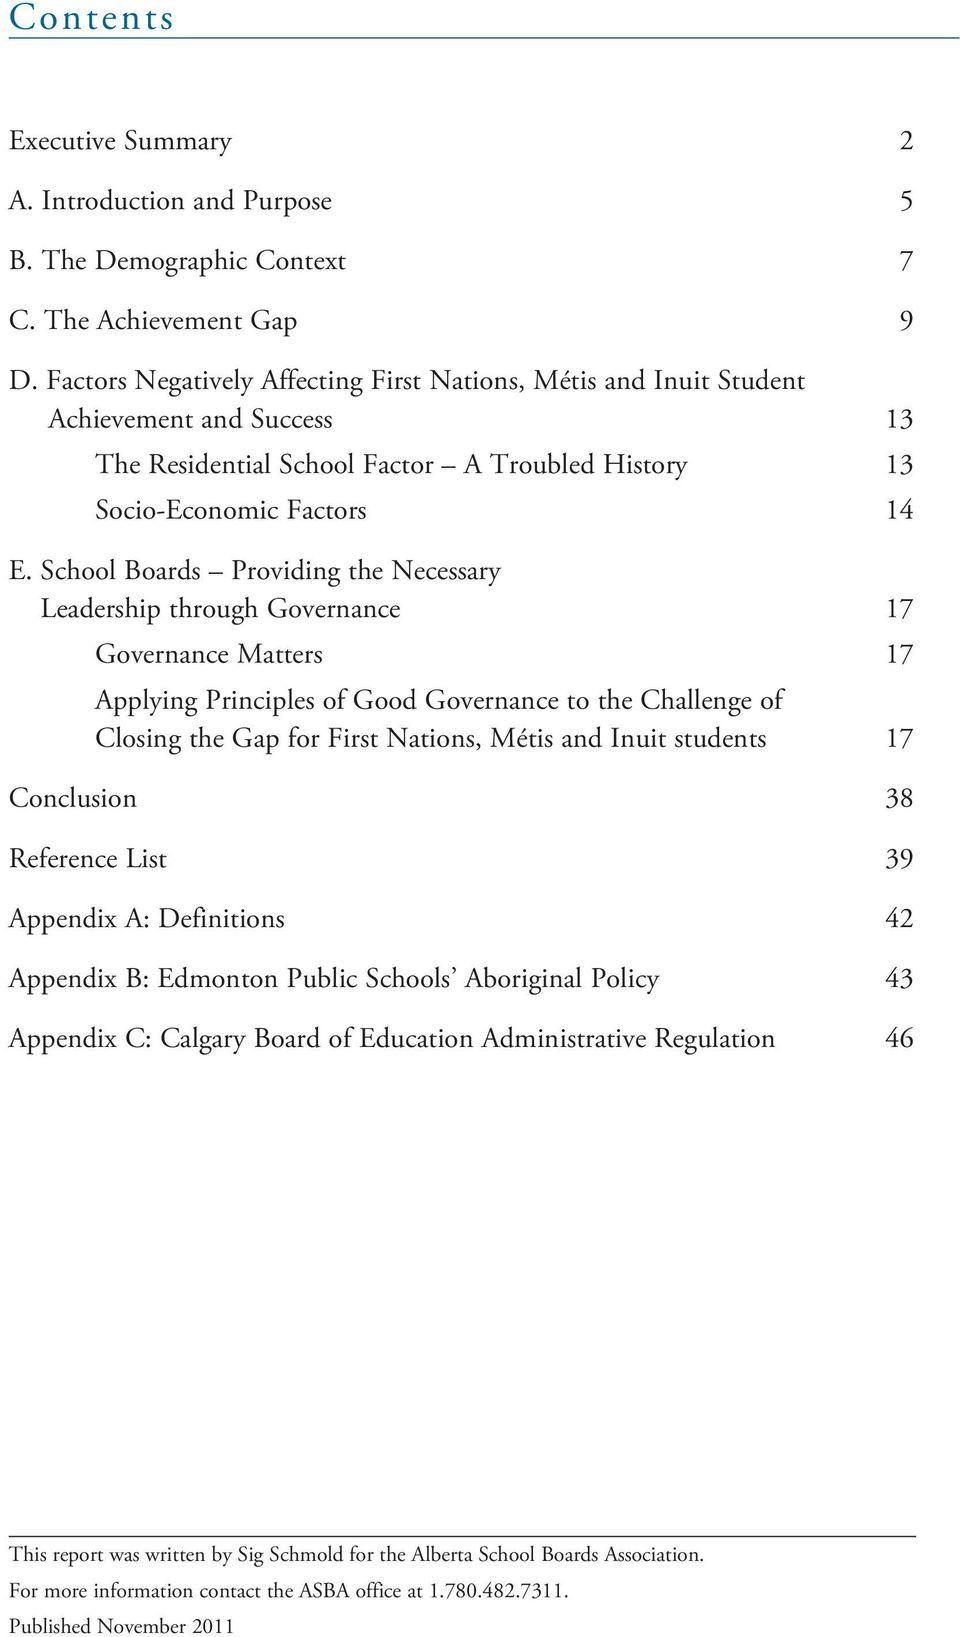 School Boards Providing the Necessary Leadership through Governance 17 Governance Matters 17 Applying Principles of Good Governance to the Challenge of Closing the Gap for First Nations, Métis and